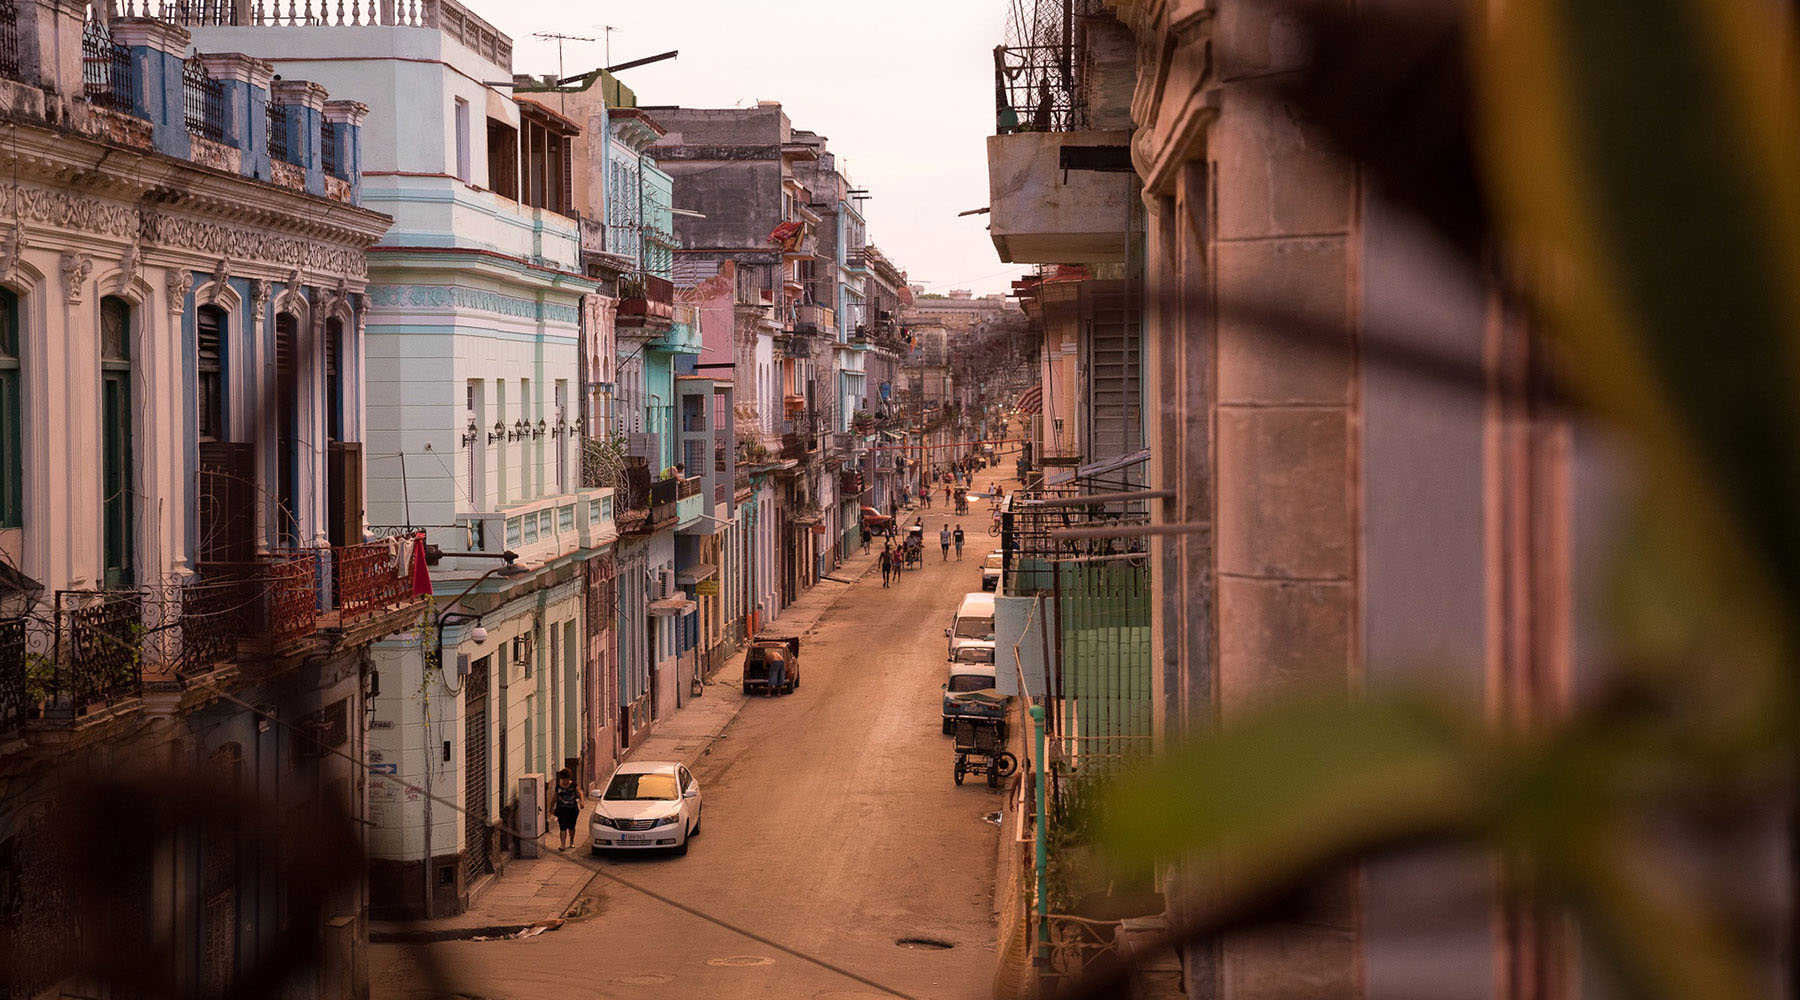 7 NIGHT HAVANA DISCOVERY VOYAGE